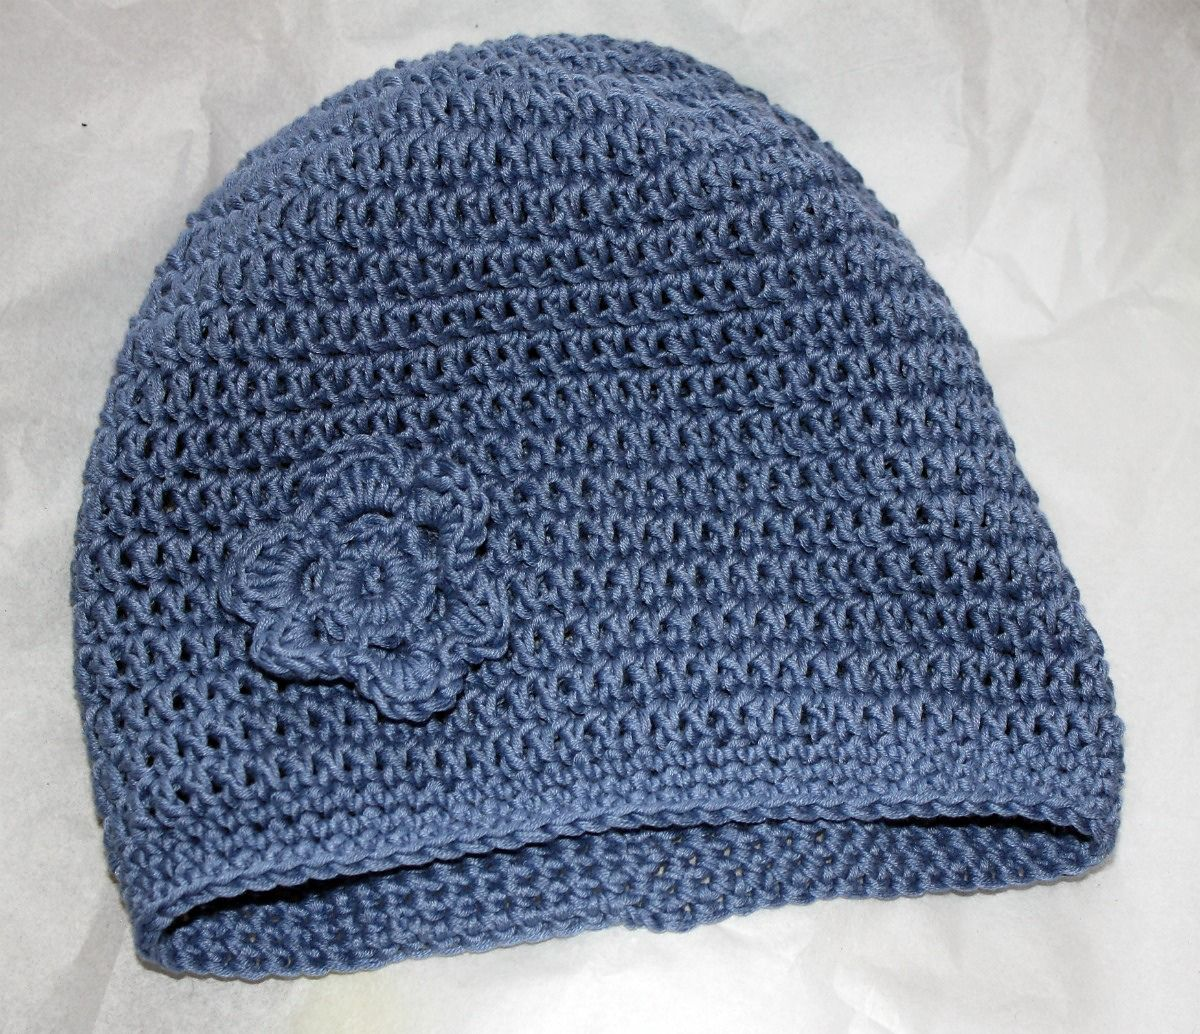 Knitted Chemo Hat Patterns Best Design Ideas